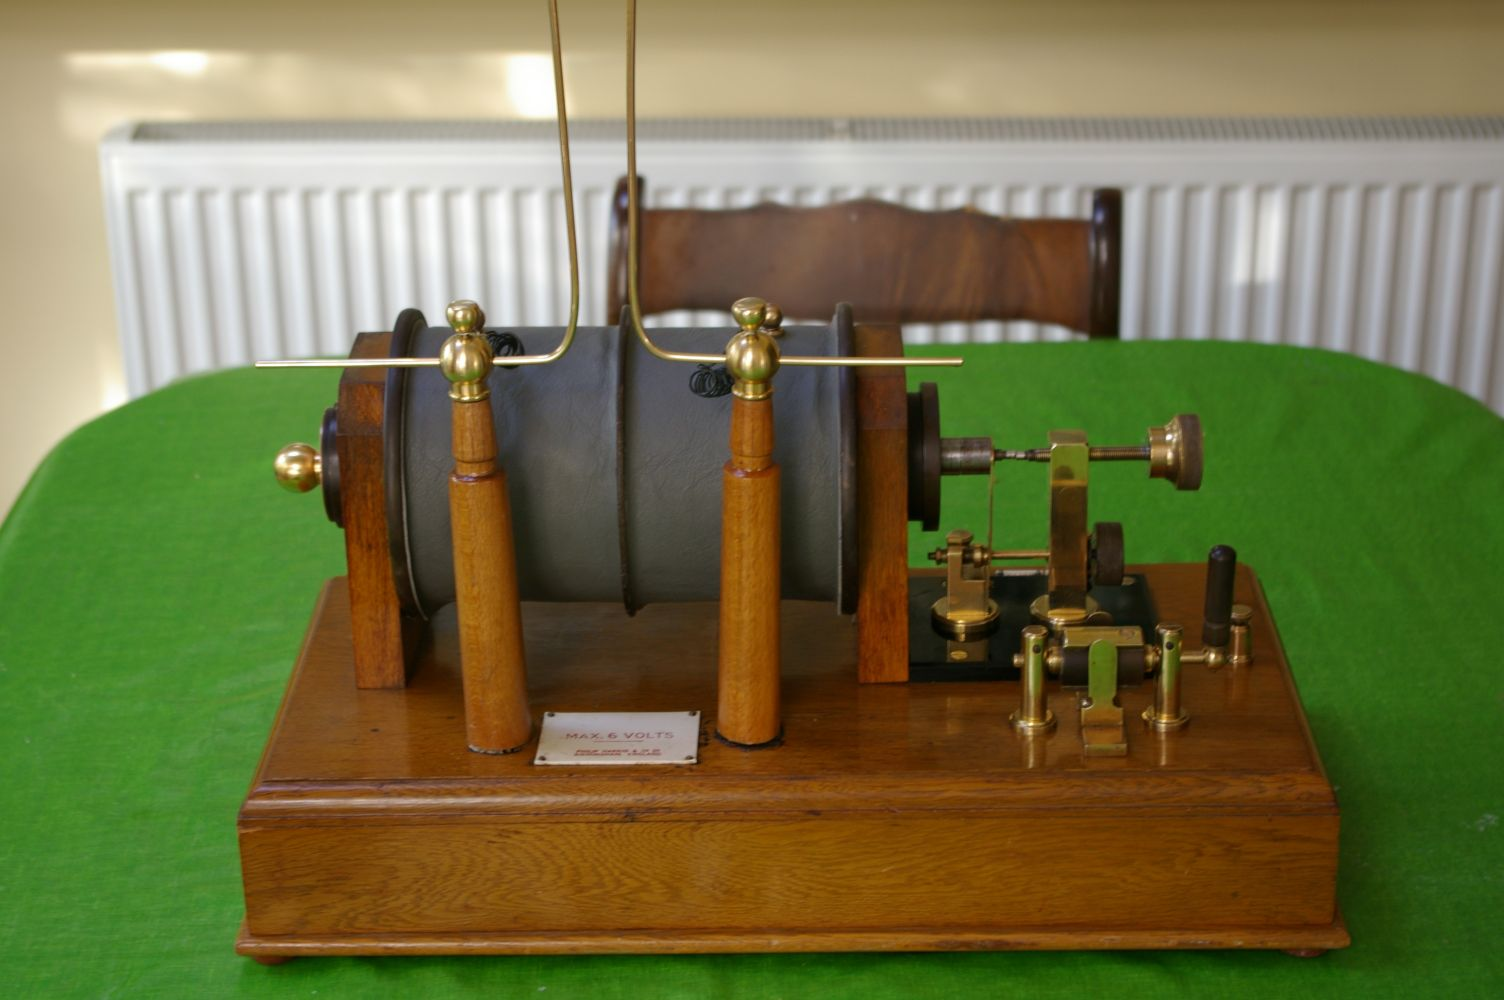 The Ruhmkorff Induction Coil